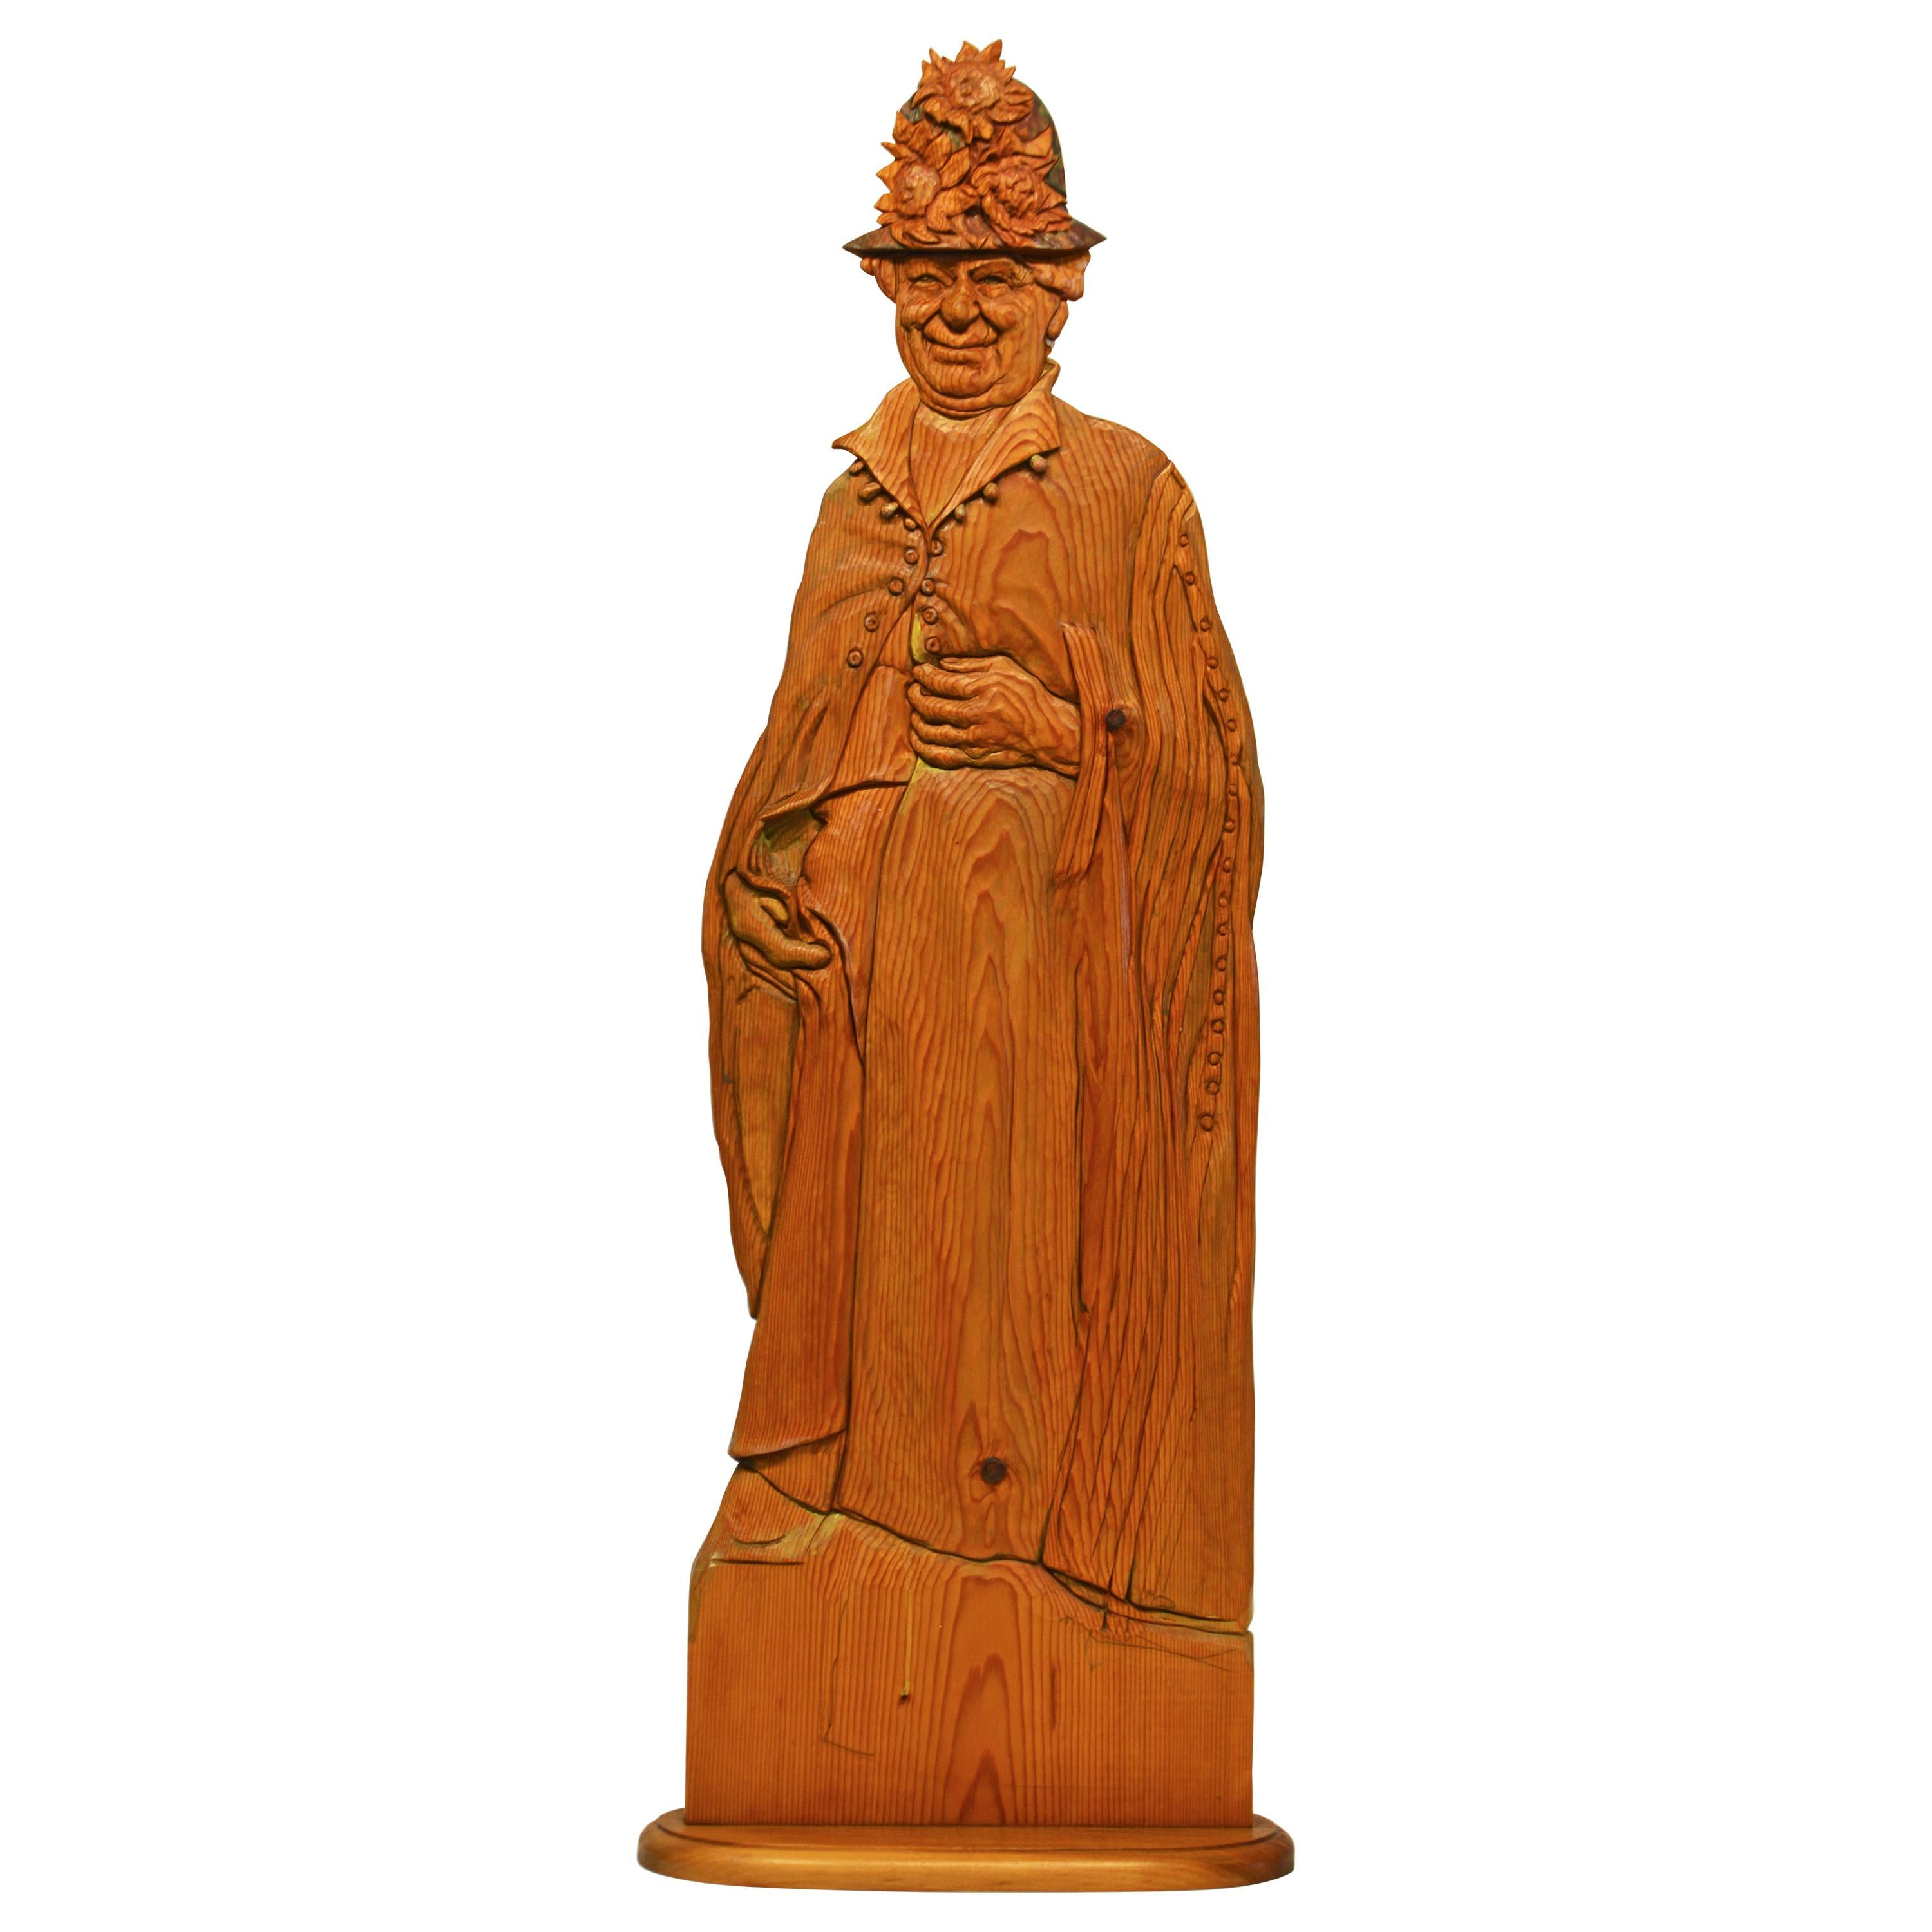 Wood Carving Sculpture 'Grace' by Rick Harney Noted Illinois Artist